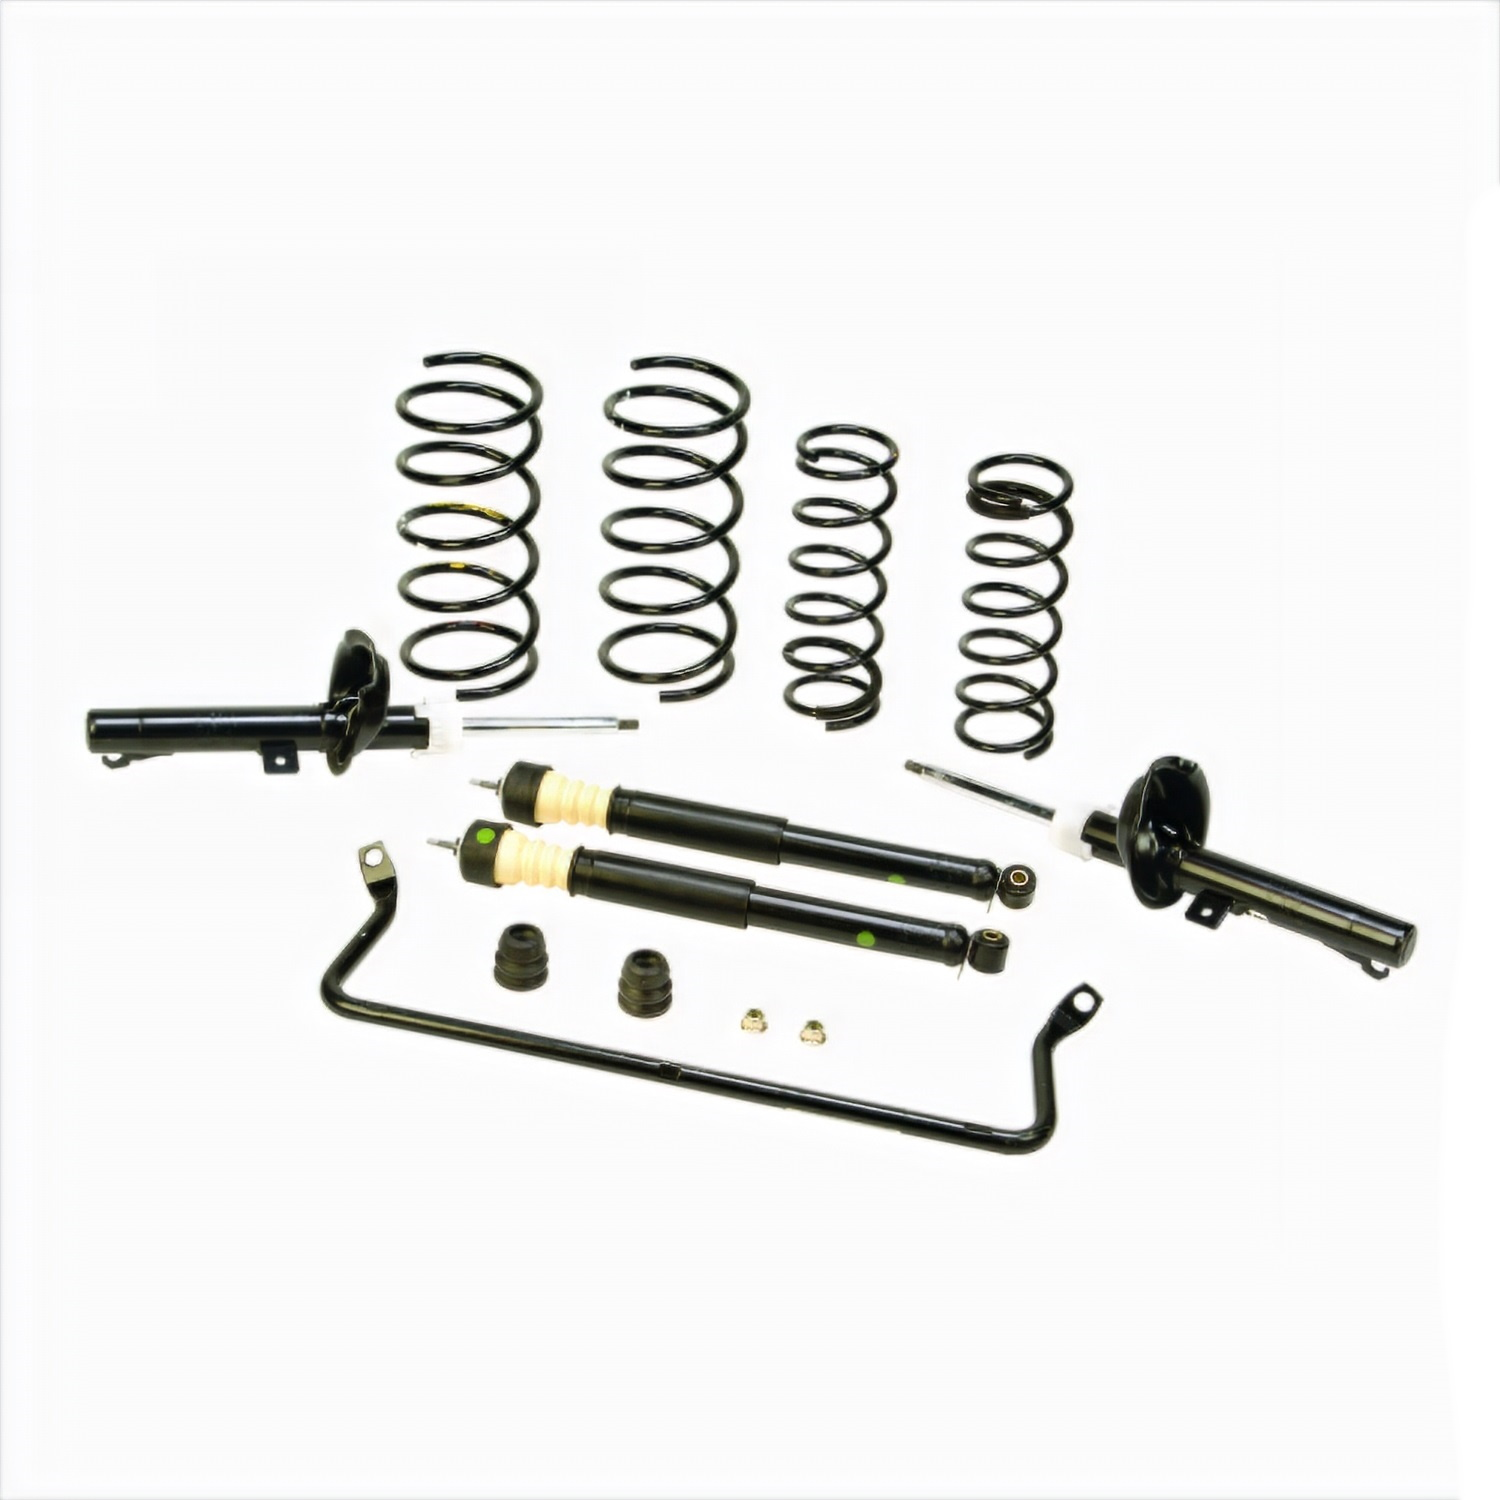 ford performance parts m 3000 zx3 handling pack fits 00 05 focus ebay. Cars Review. Best American Auto & Cars Review